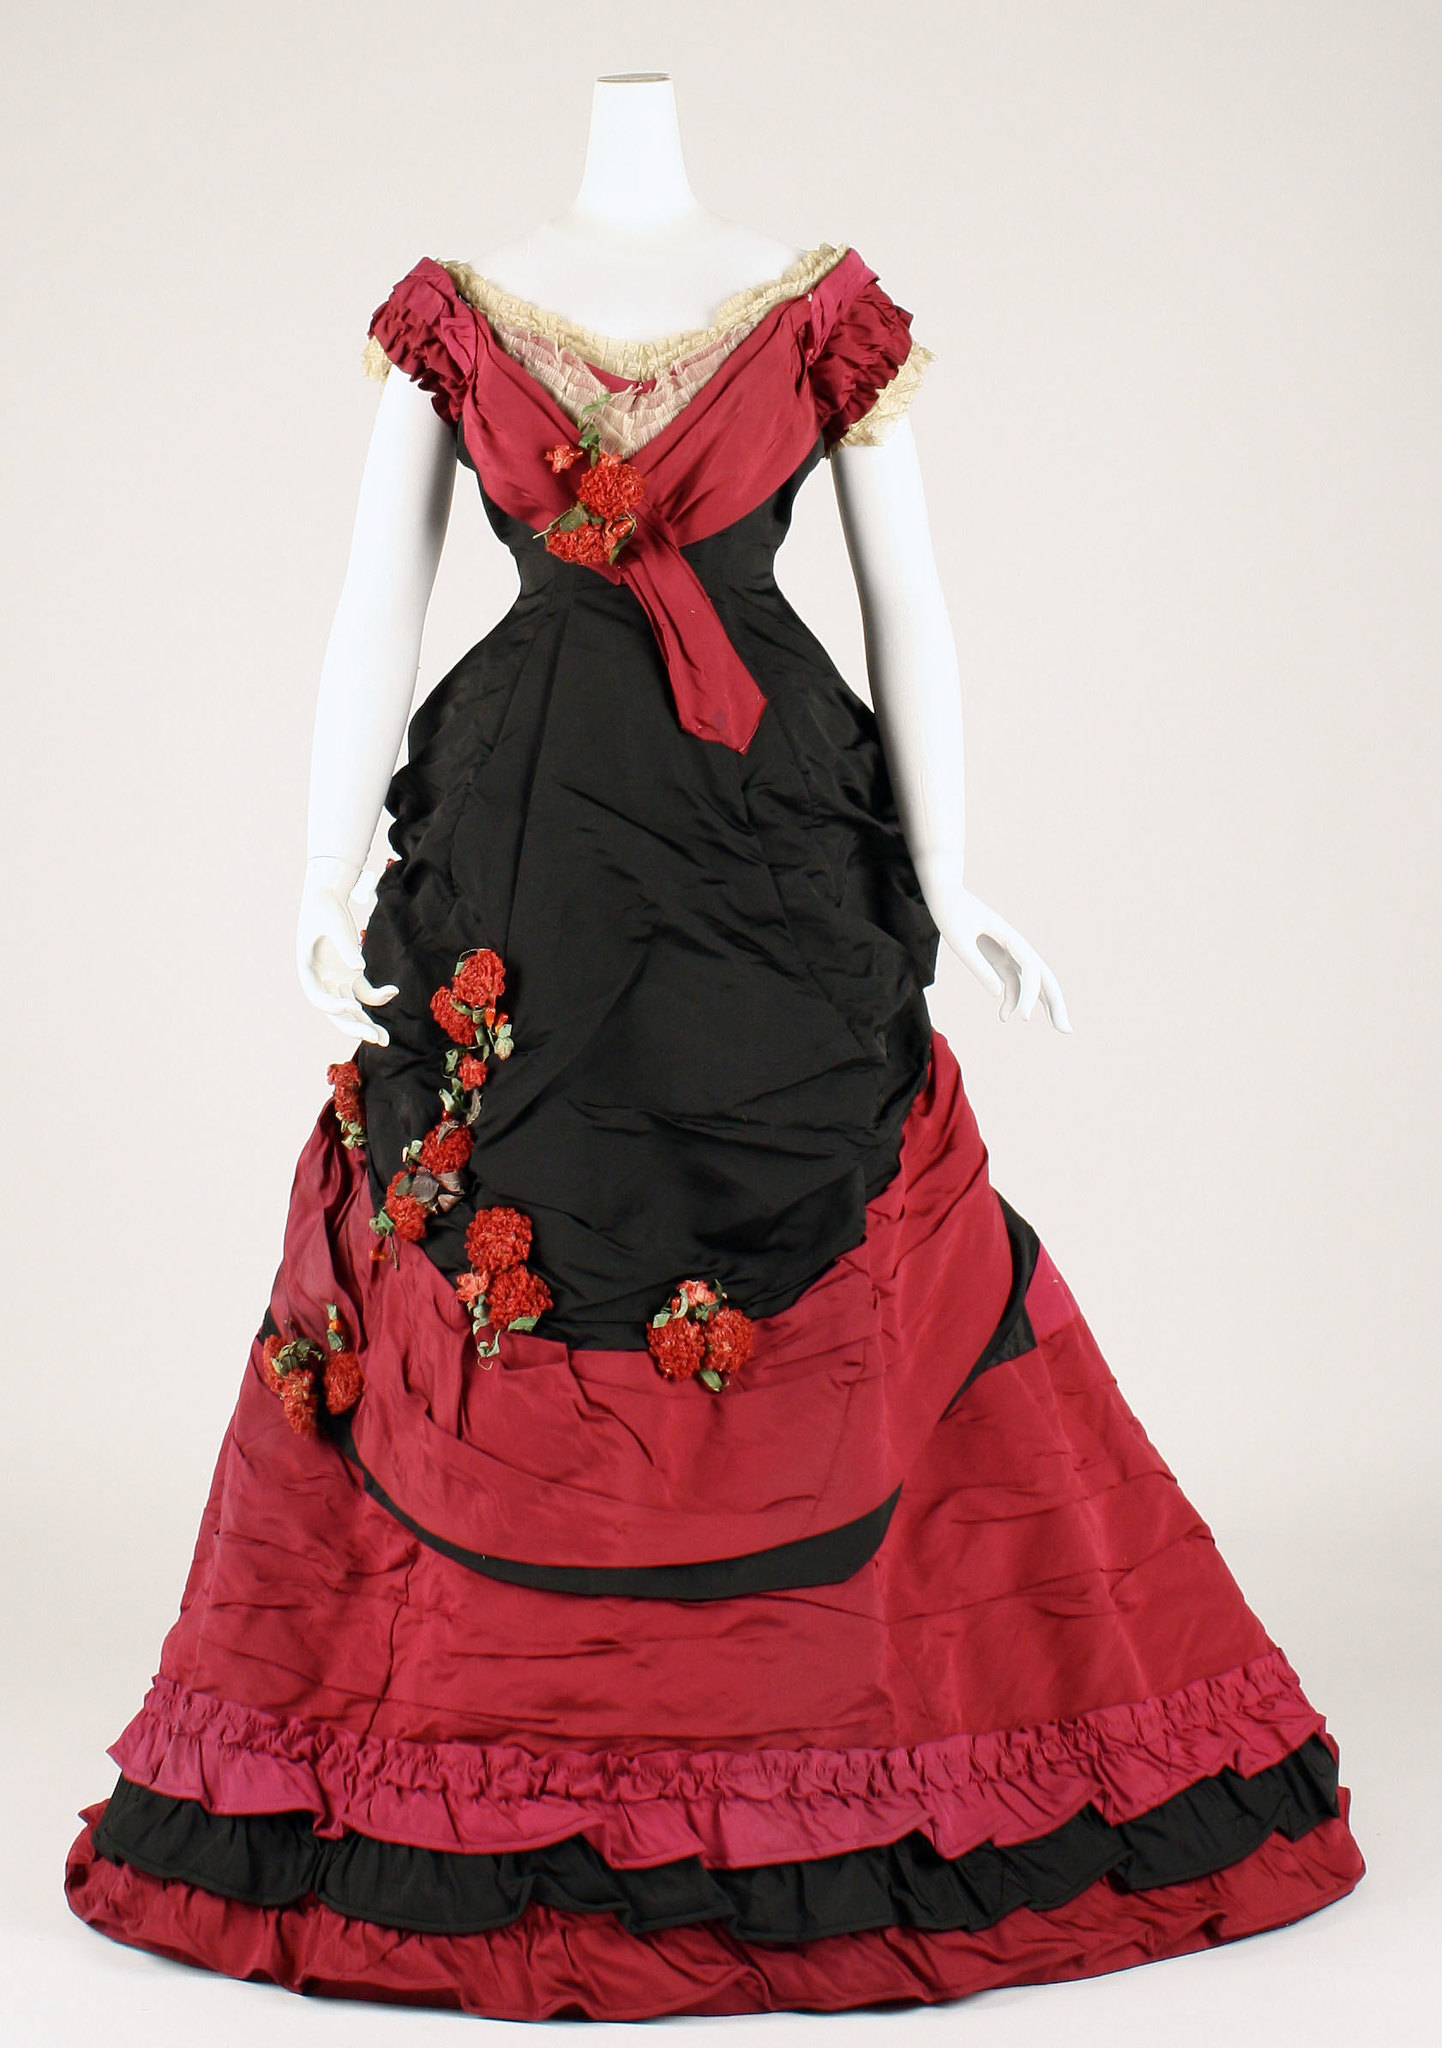 1878 Ball gown. British. Silk. metmuseum